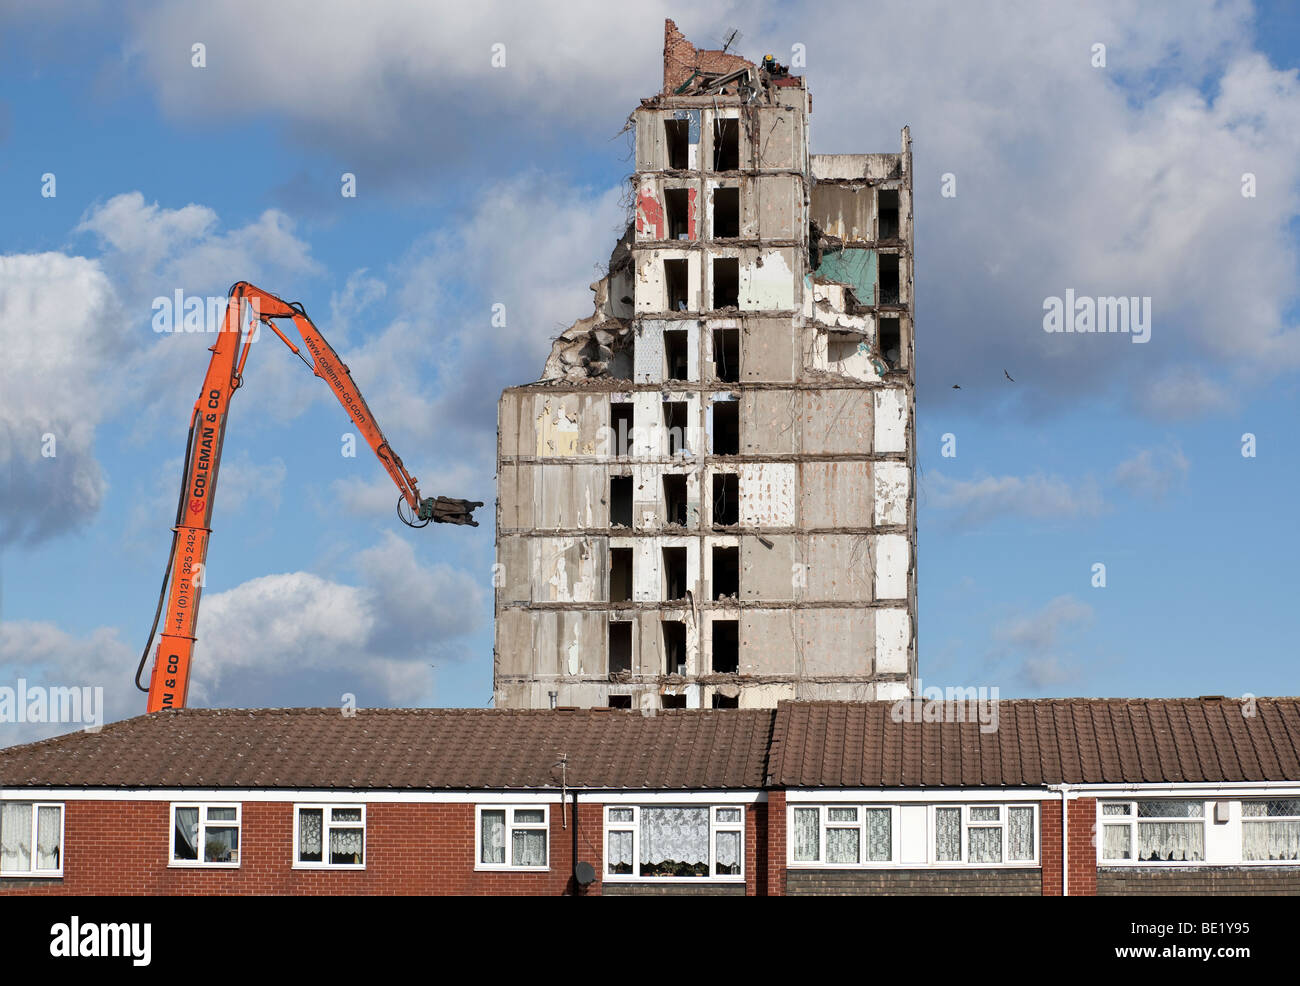 A residential tower block being demolished behind a row of houses in Birmingham, England, UK. - Stock Image